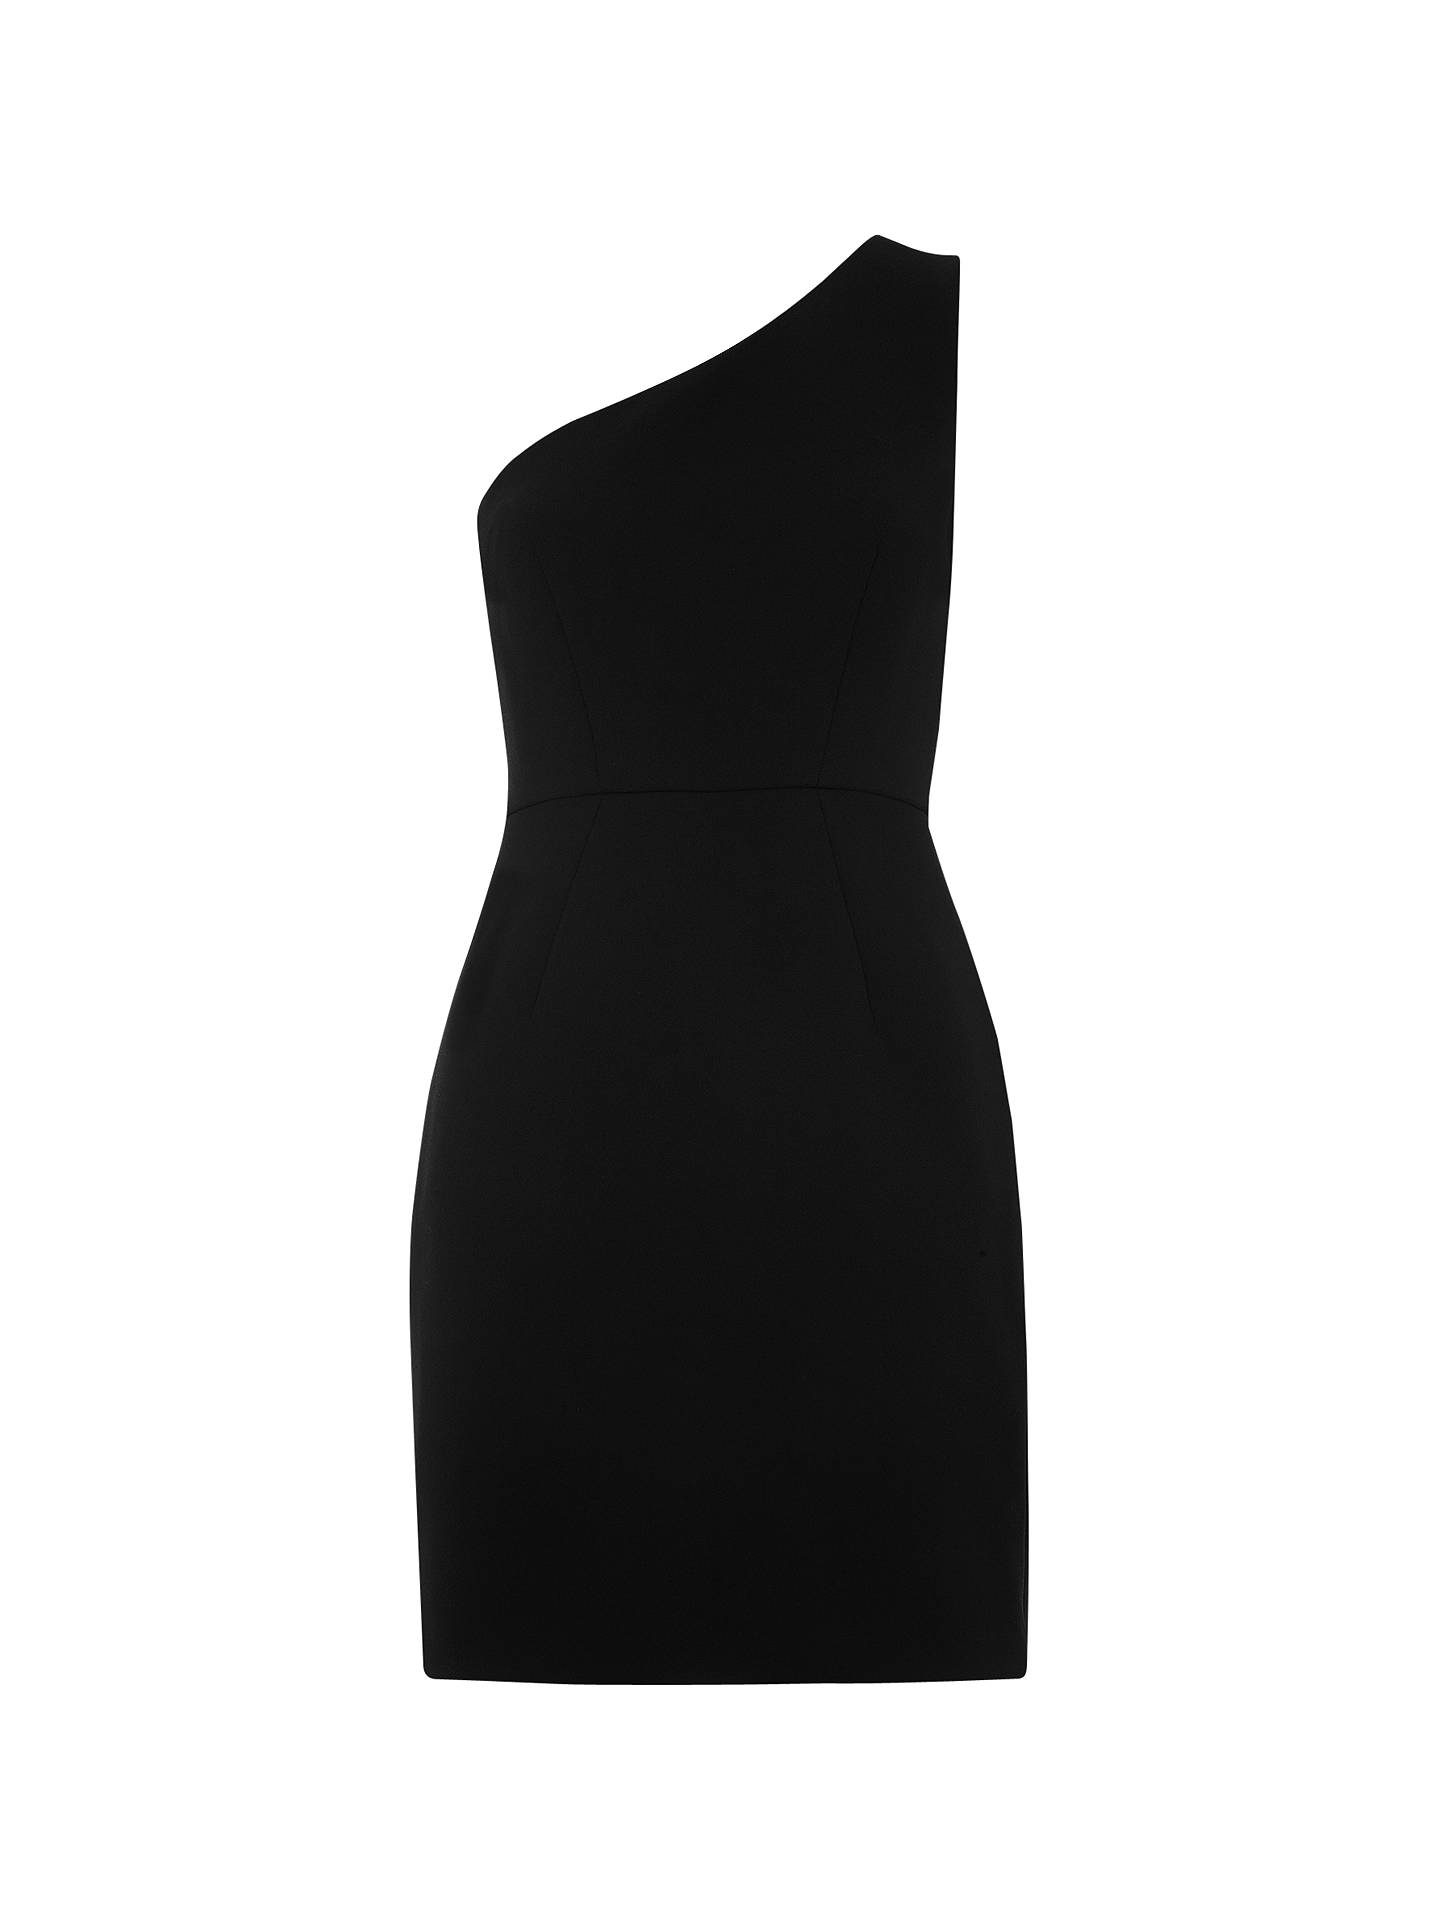 861b18d77a9 Buy Whistles Estelle One Shoulder Dress, Black, 6 Online at johnlewis.com  ...